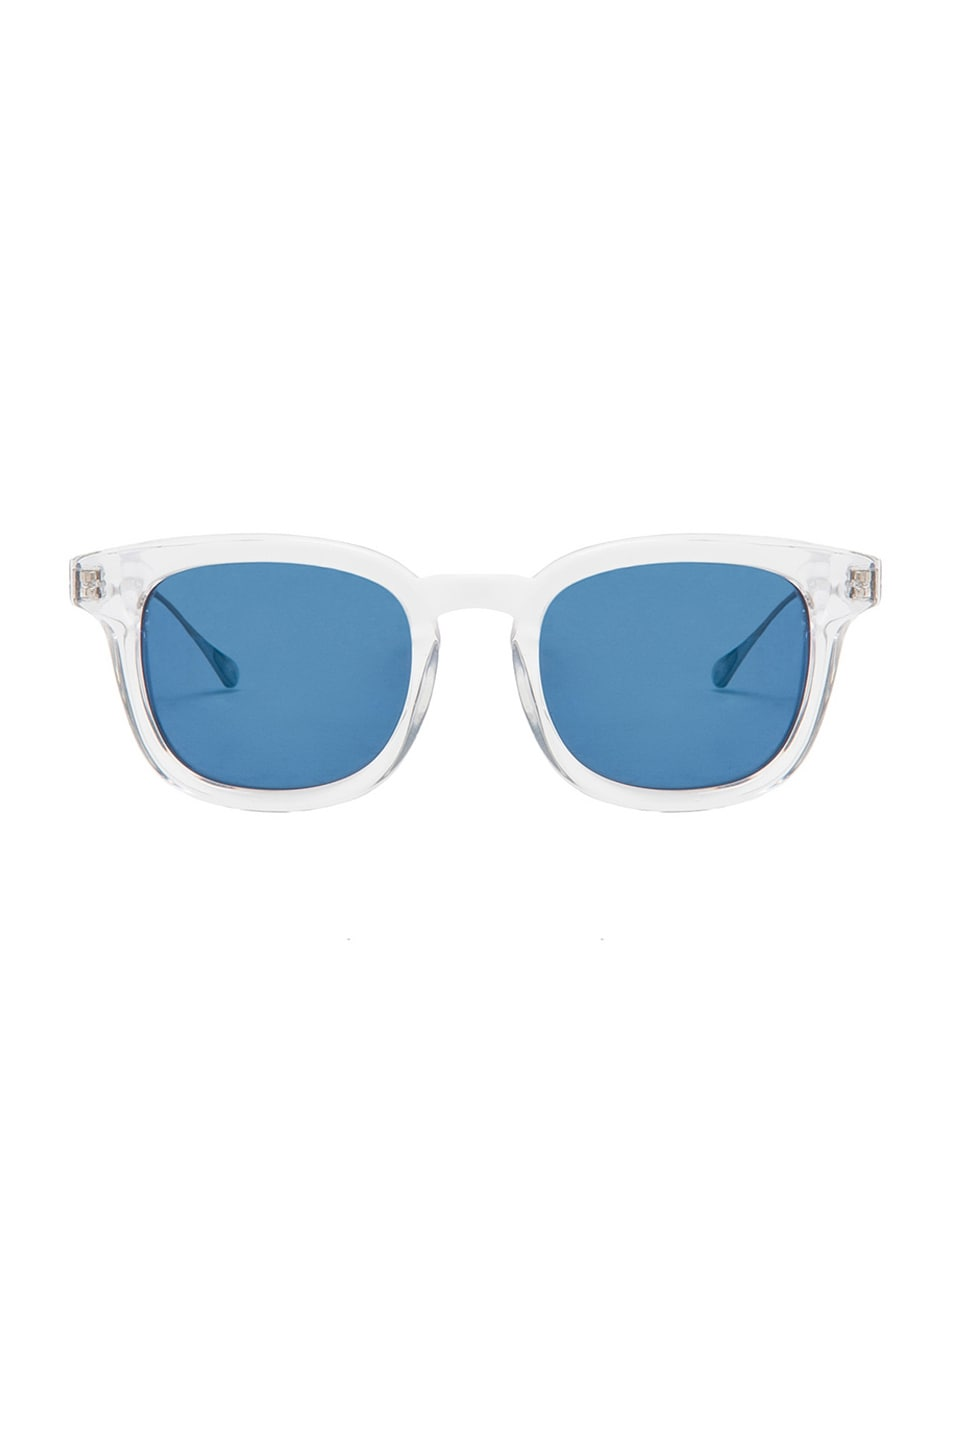 Image 1 of Oliver Peoples WEST Cabrillo Polarized Sunglasses in Crystal & Malibu Mirror